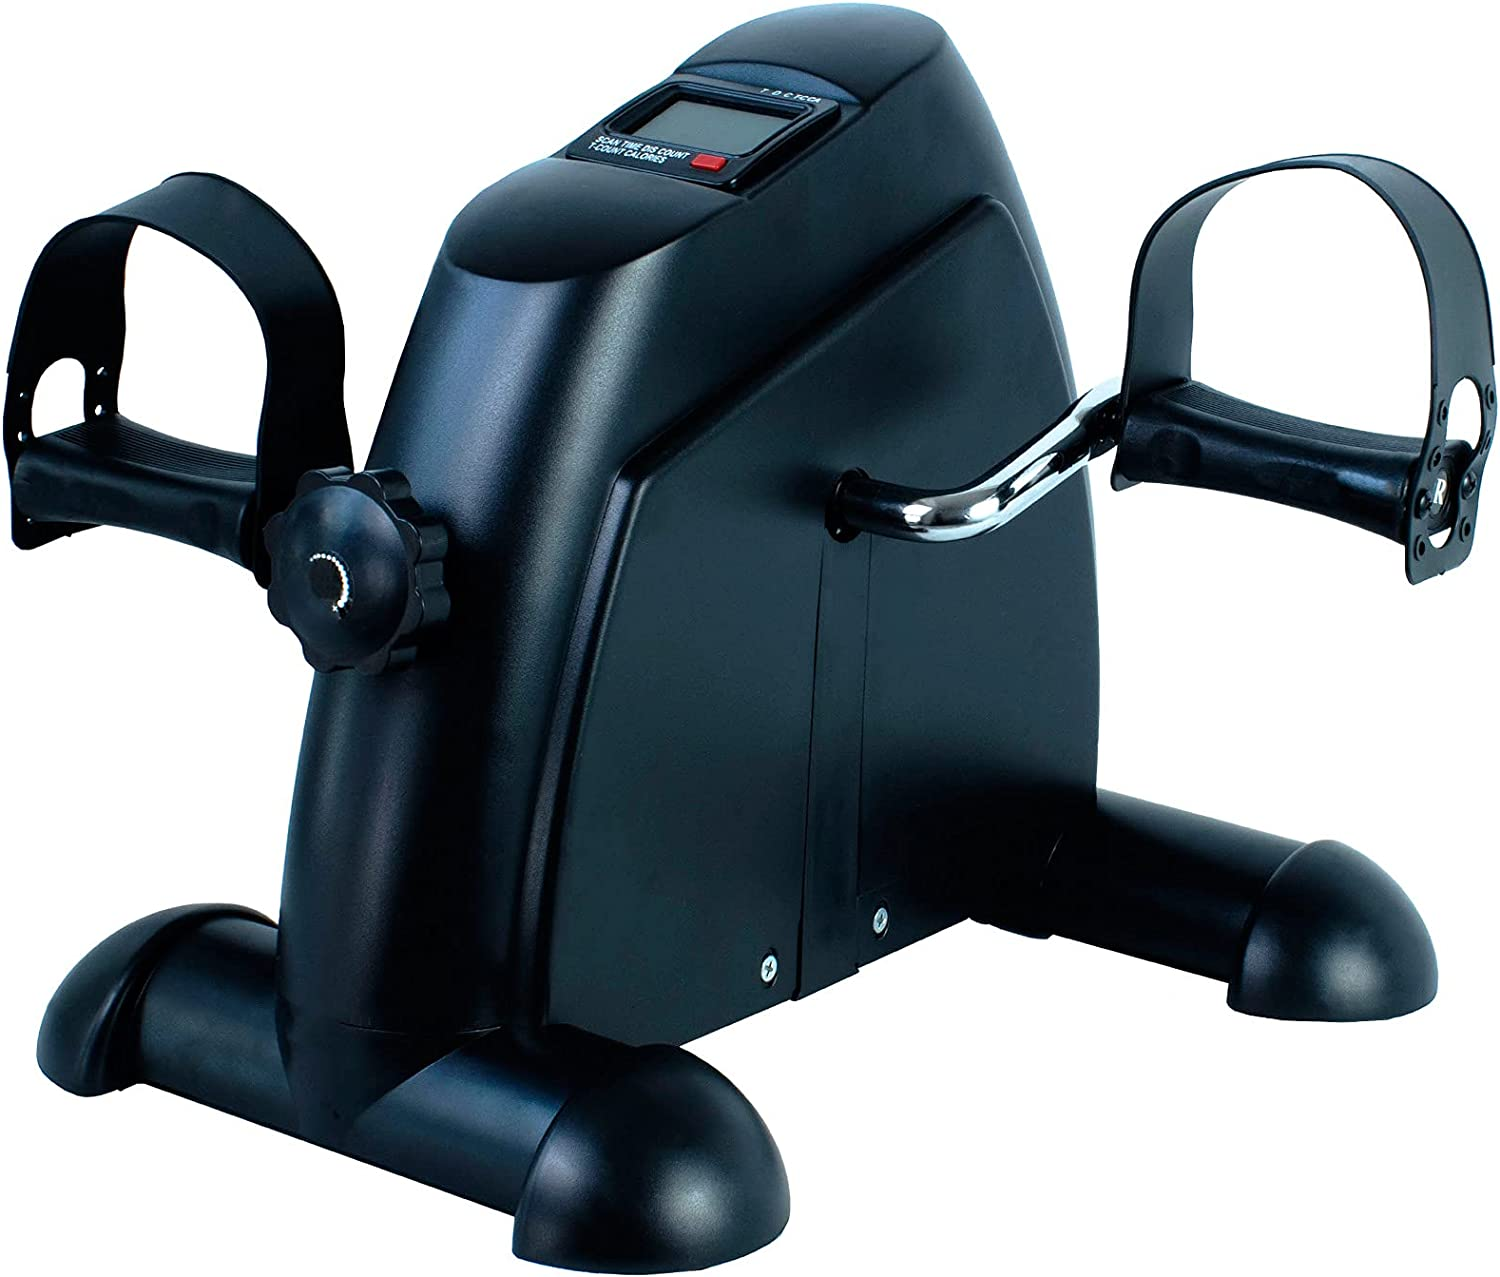 Under Desk Bike Genuine Free Shipping Pedal Price reduction Foot Exerciser P